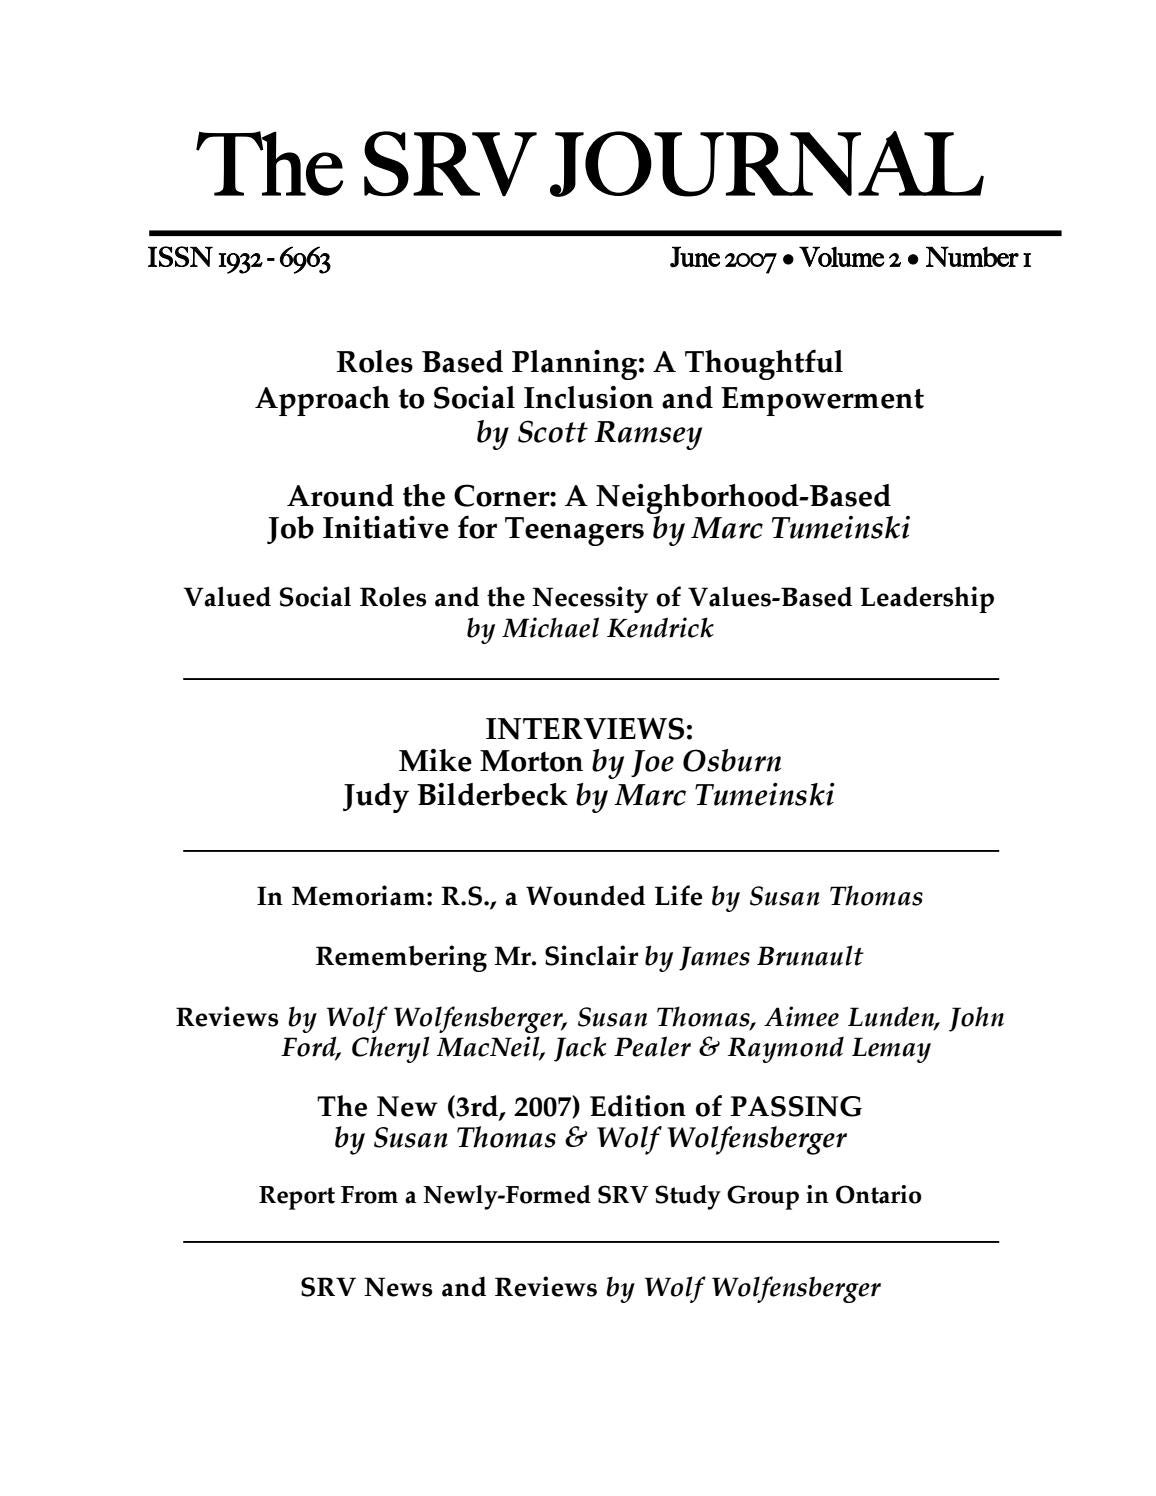 a quarter century of normalization and social role valorization lemay raymond flynn robert j